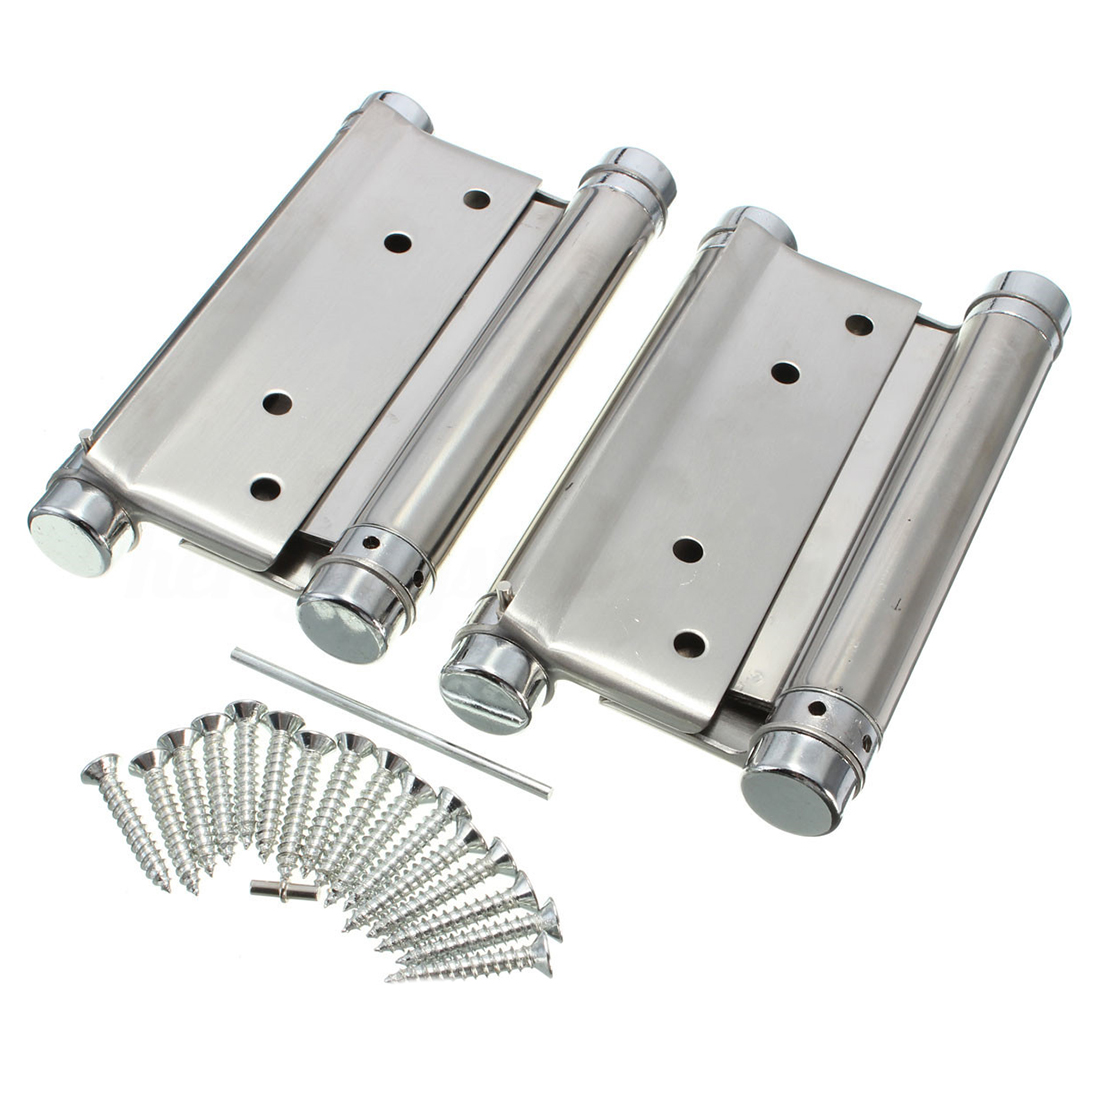 4 Spring Double 3 Action Hinges Doors